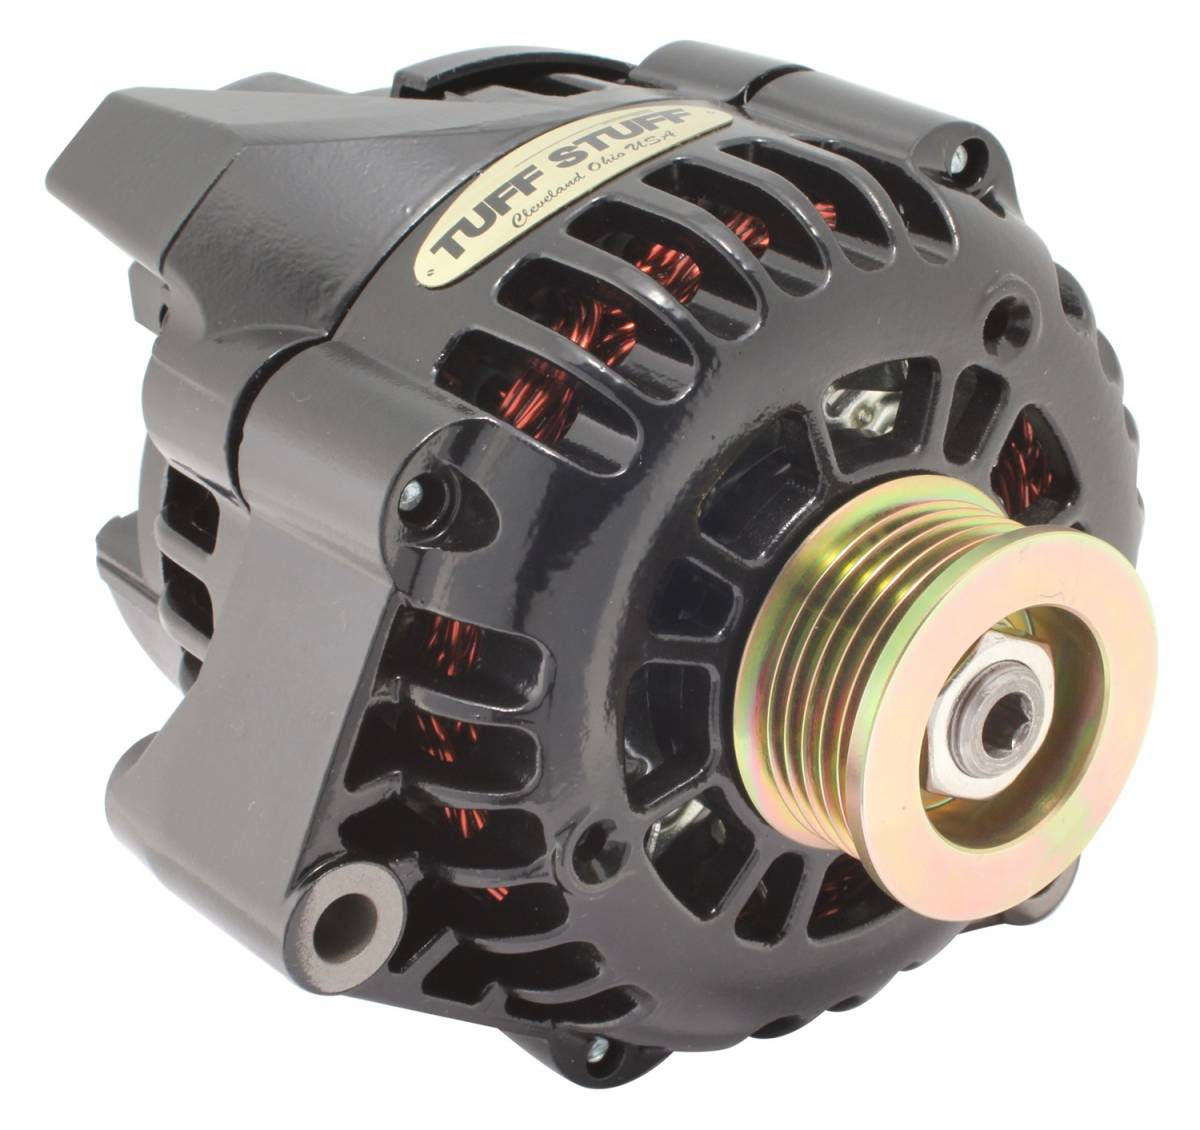 Tuff Stuff Performance - Alternator 175 AMP Upgrade 1-Wire Or OEM Wire 6 Groove Pulley LS1 Engines Only Black 8242NB